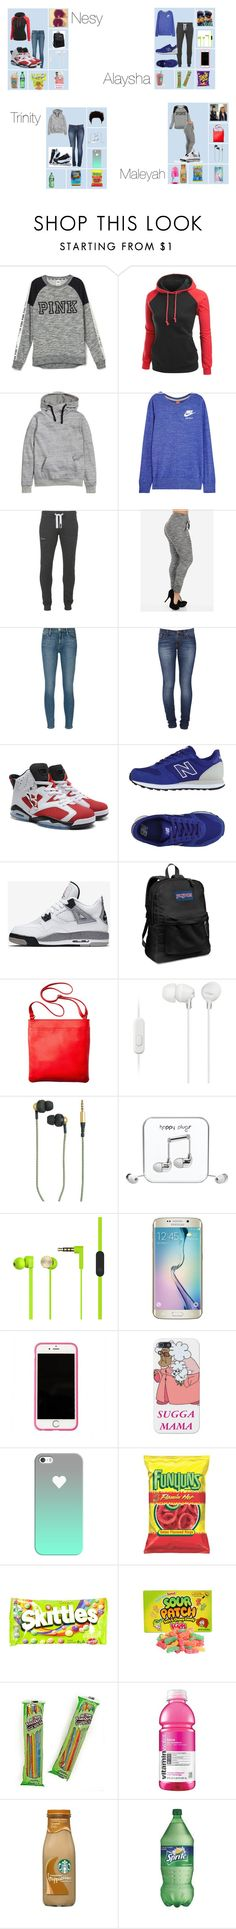 """#463"" by aneysajslexander ❤ liked on Polyvore featuring H&M, NIKE, Superdry, Frame Denim, Nudie Jeans Co., New Balance, Retrò, JanSport, Merona and Sony"